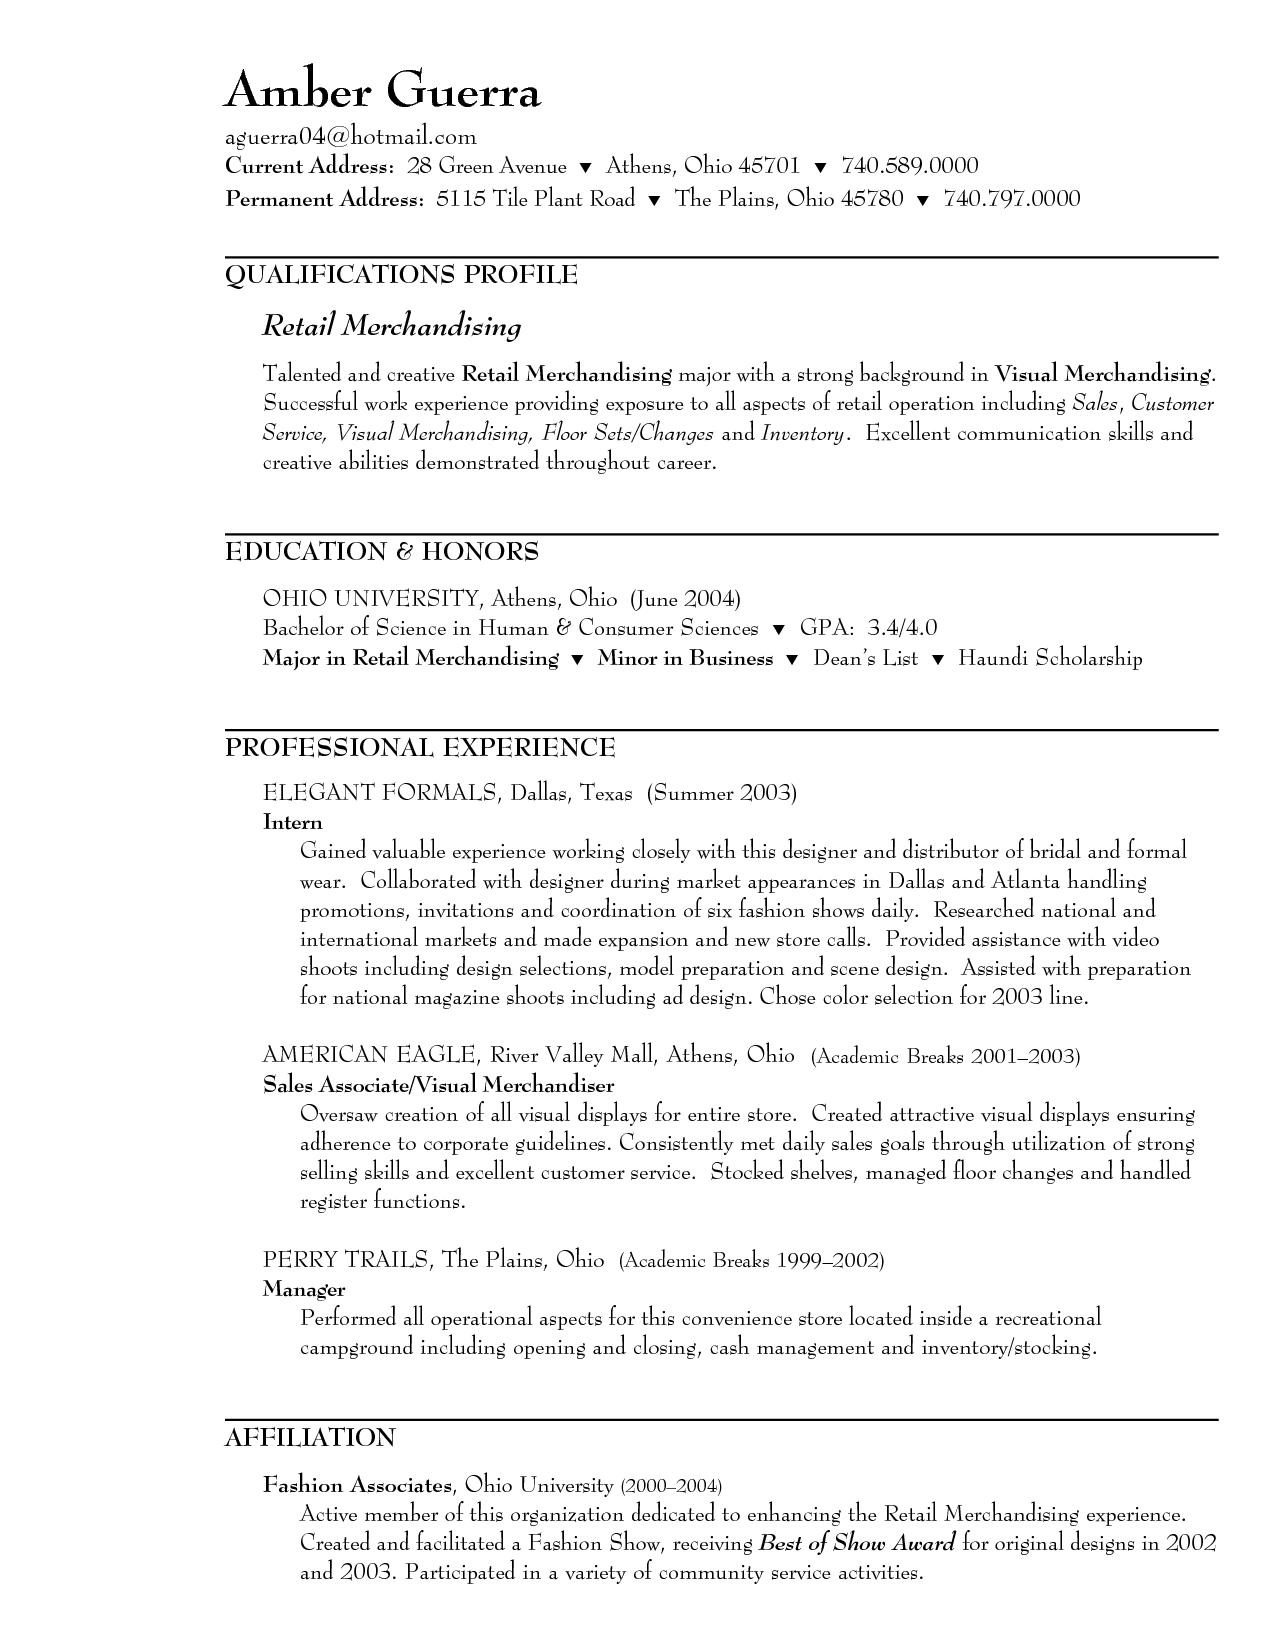 Sample resume for retail sales associate in a clothing store sample sample resume for retail sales associate in a clothing store sample resume for retail sales associated thecheapjerseys Image collections